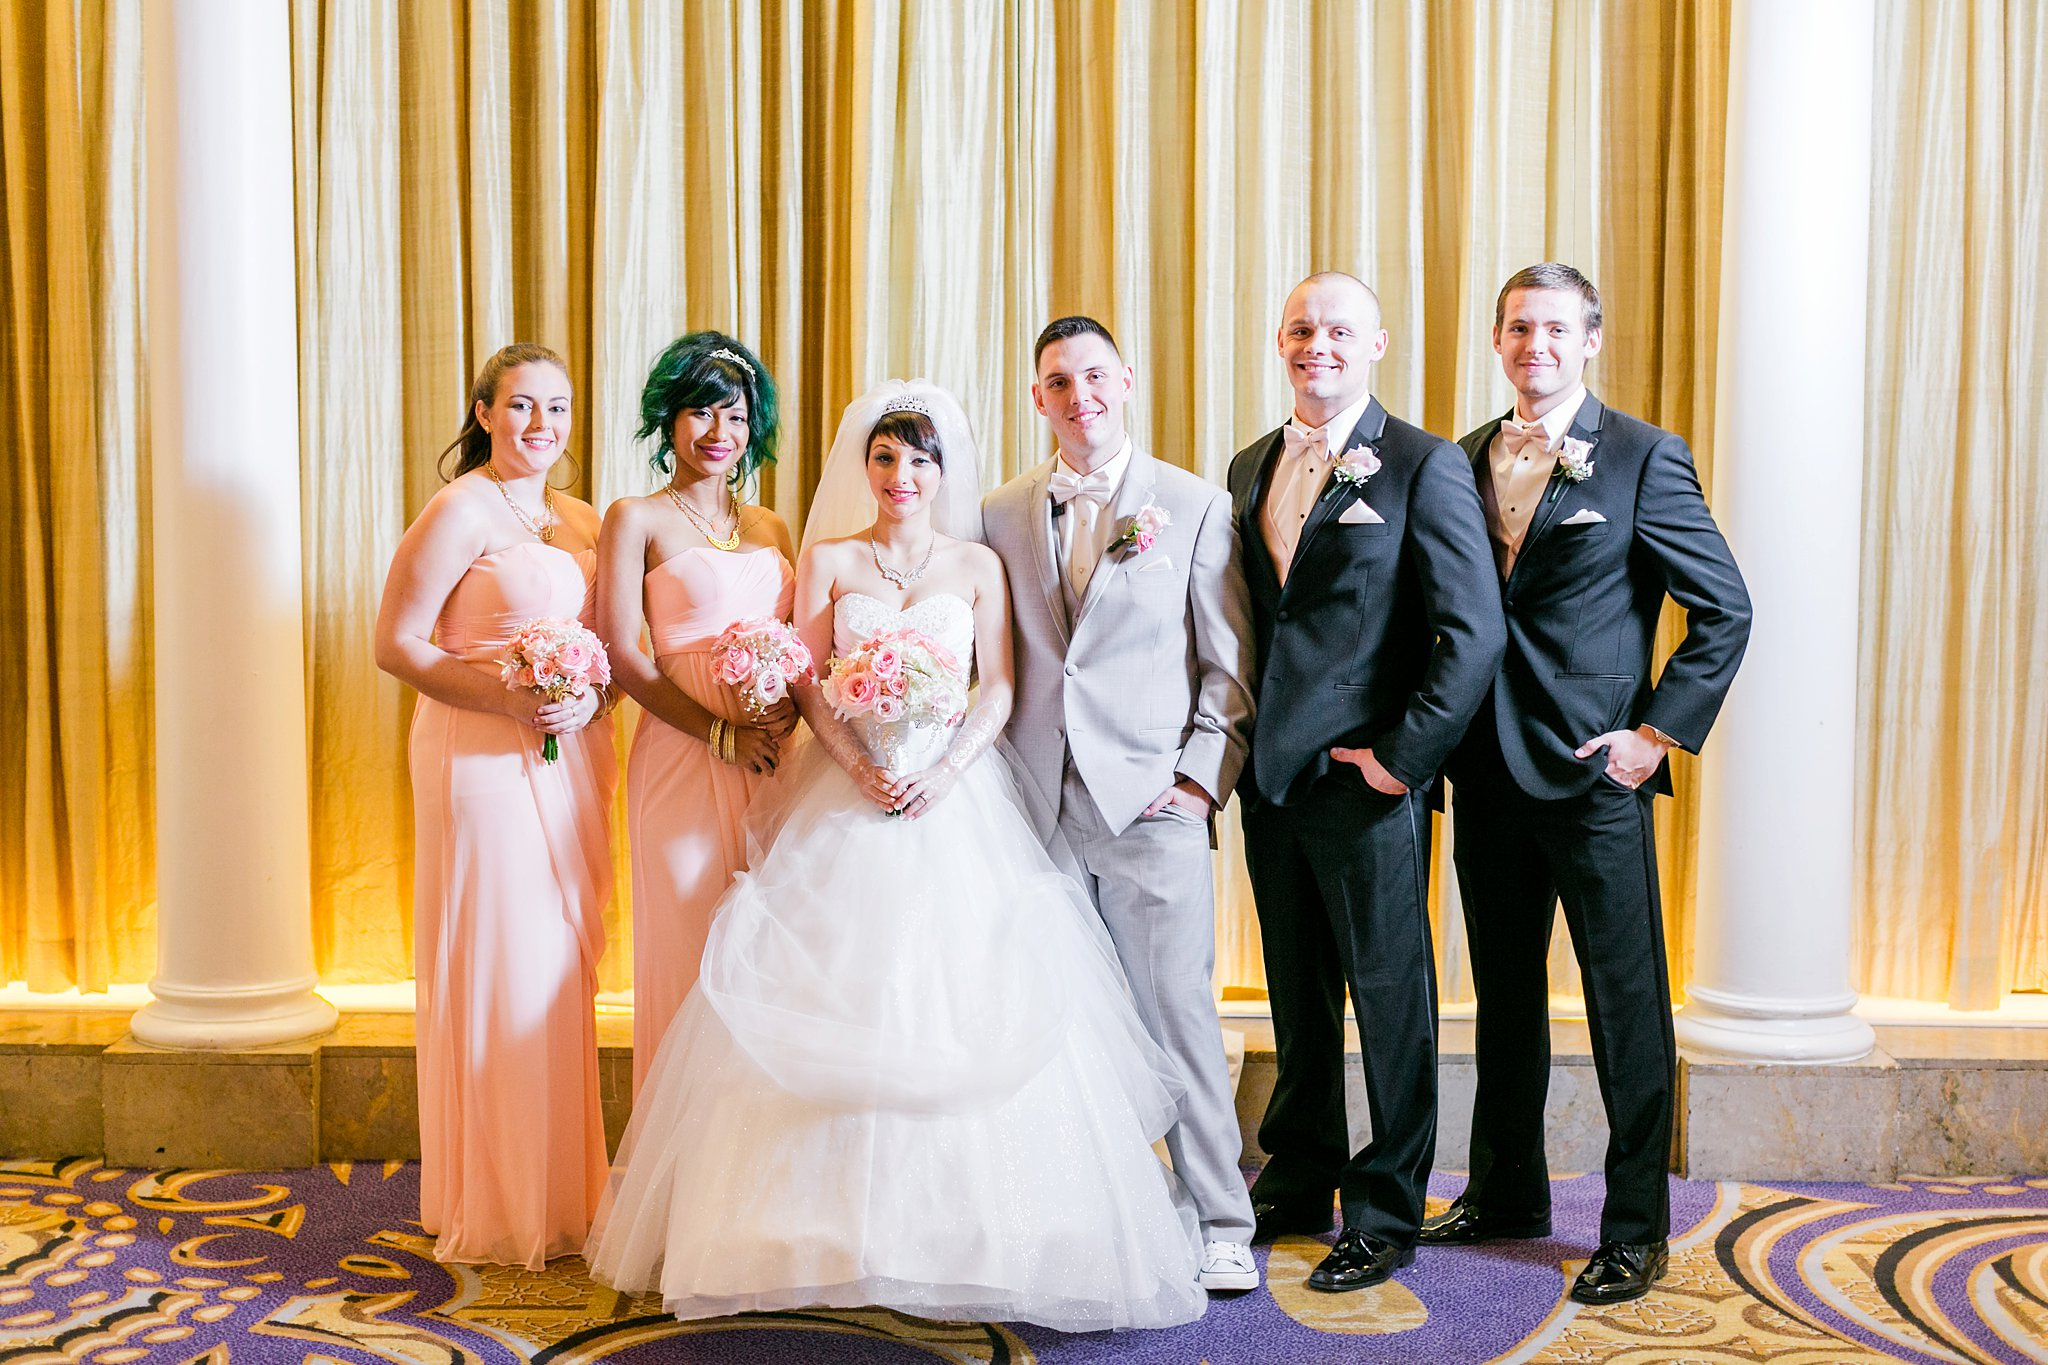 Mayflower Hotel Wedding Photos DC Pink & Gold Winter Wedding Tori & Tyler-321_photo.jpg